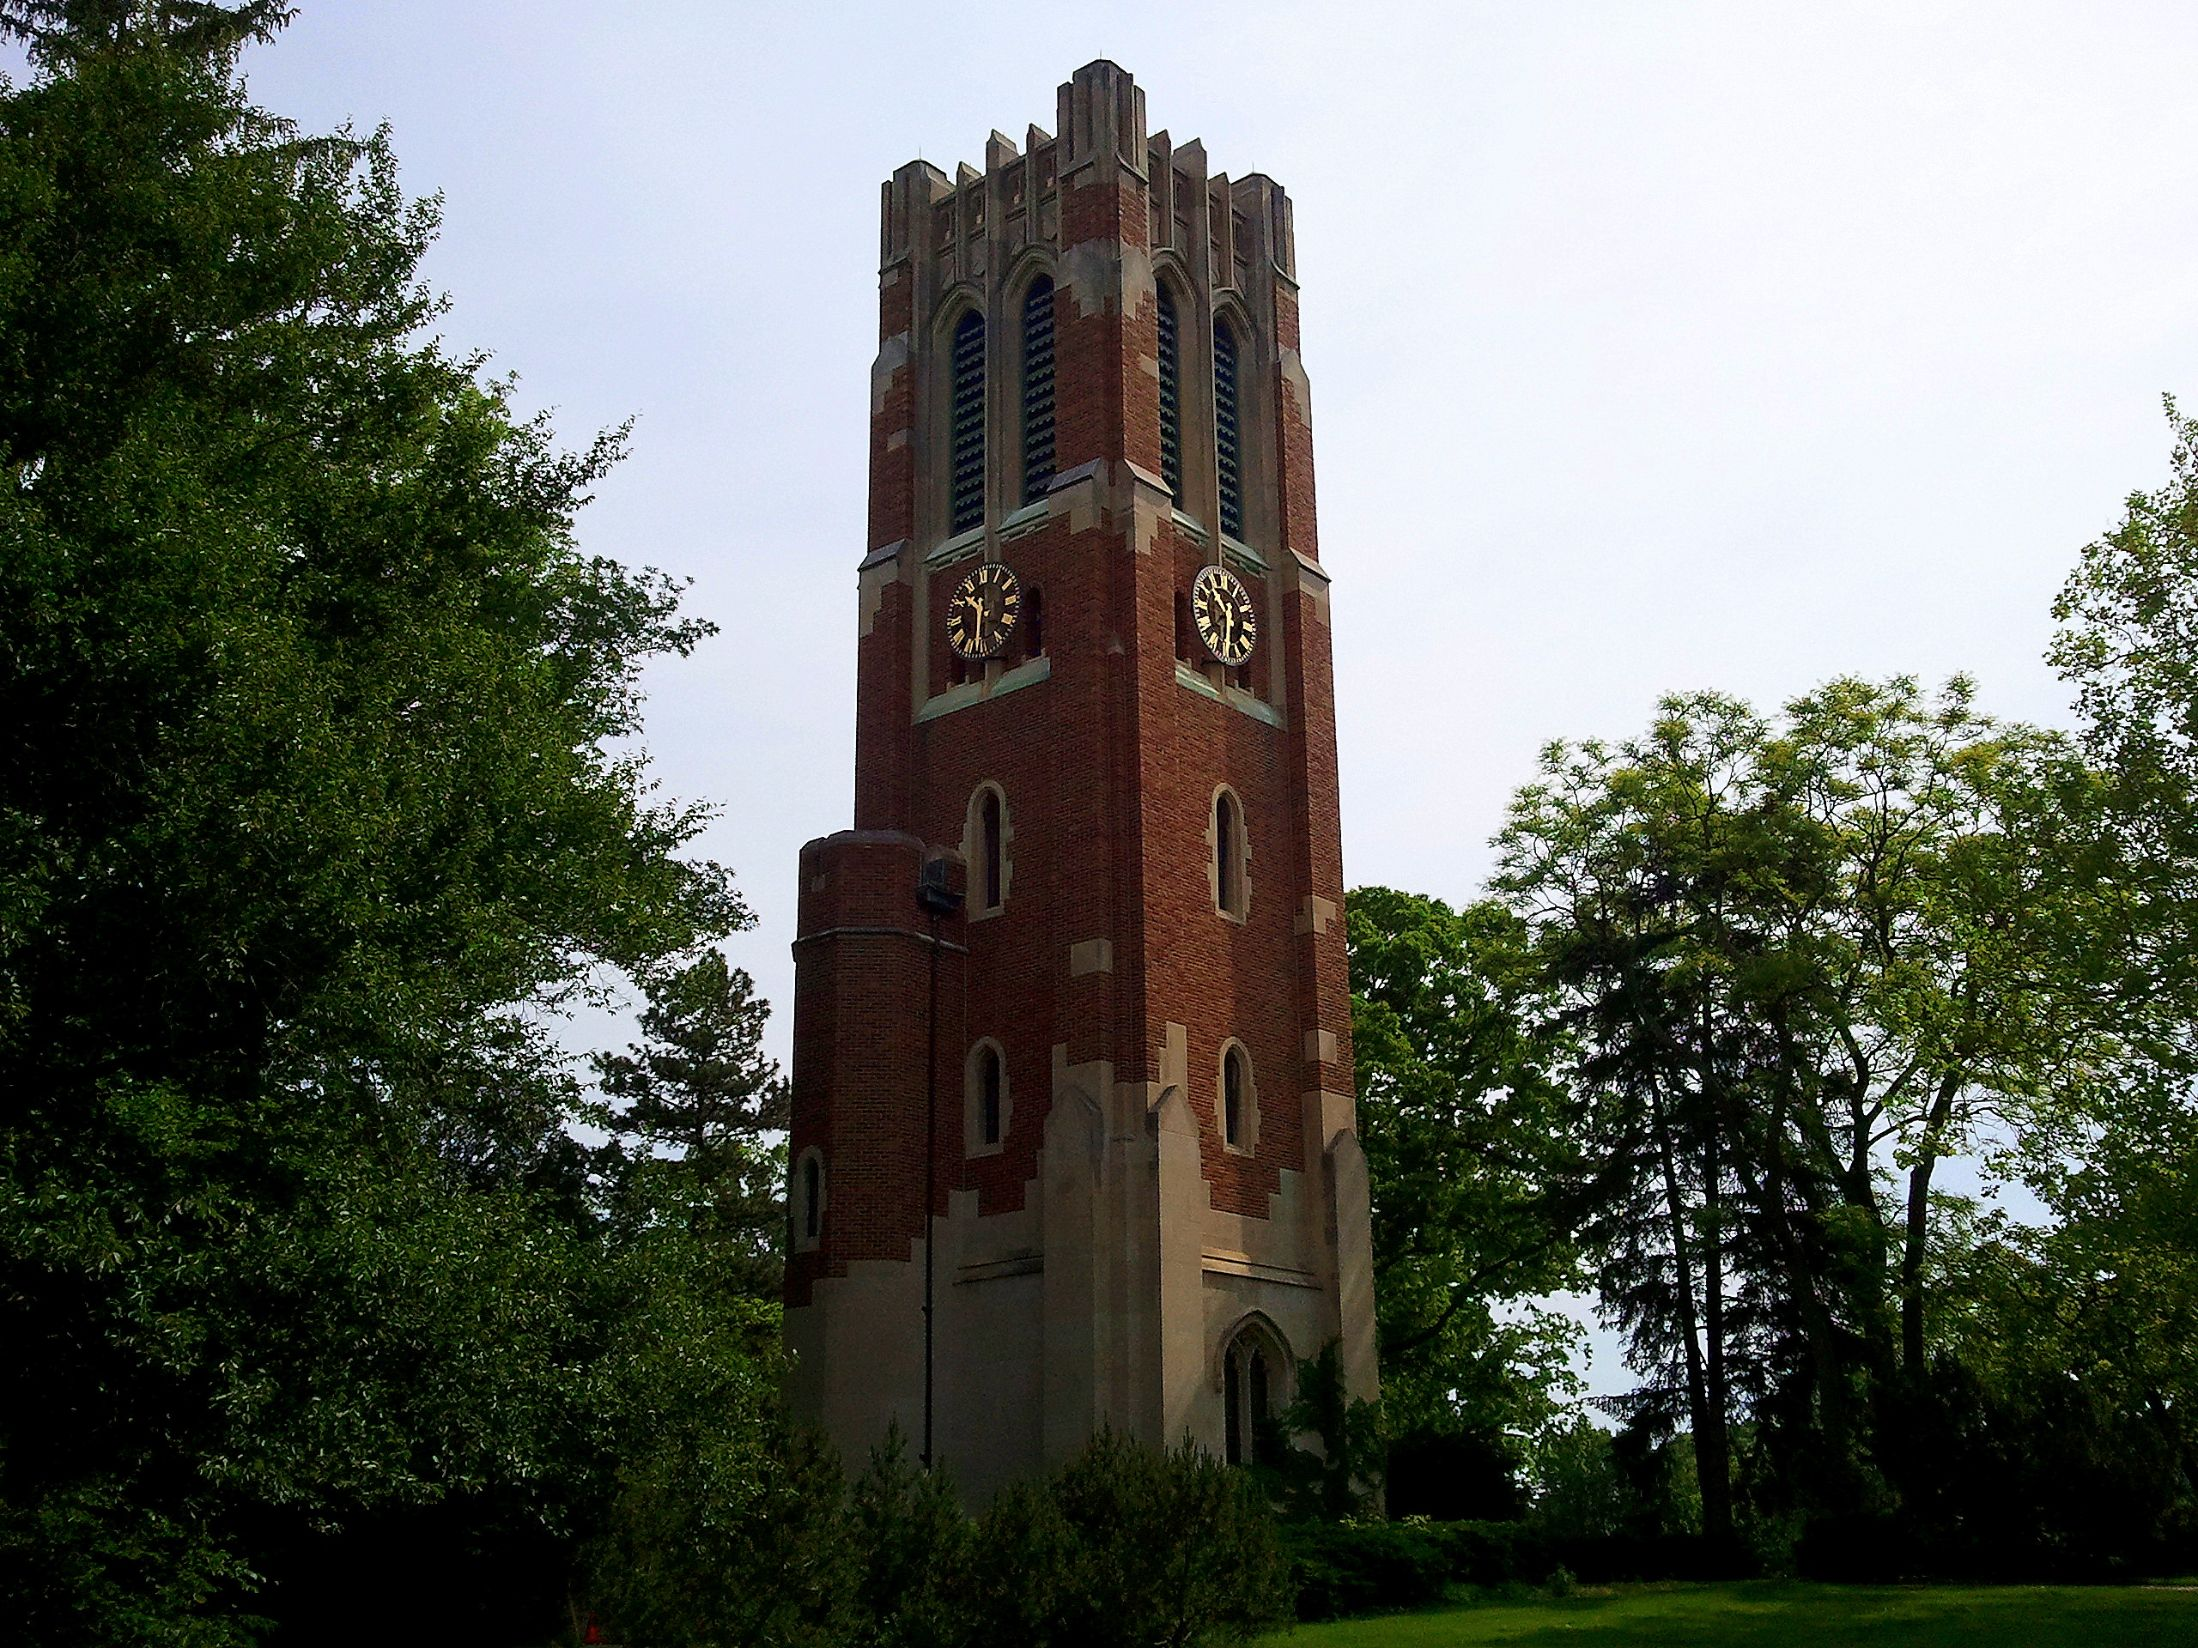 Beaumont-Tower-2-1